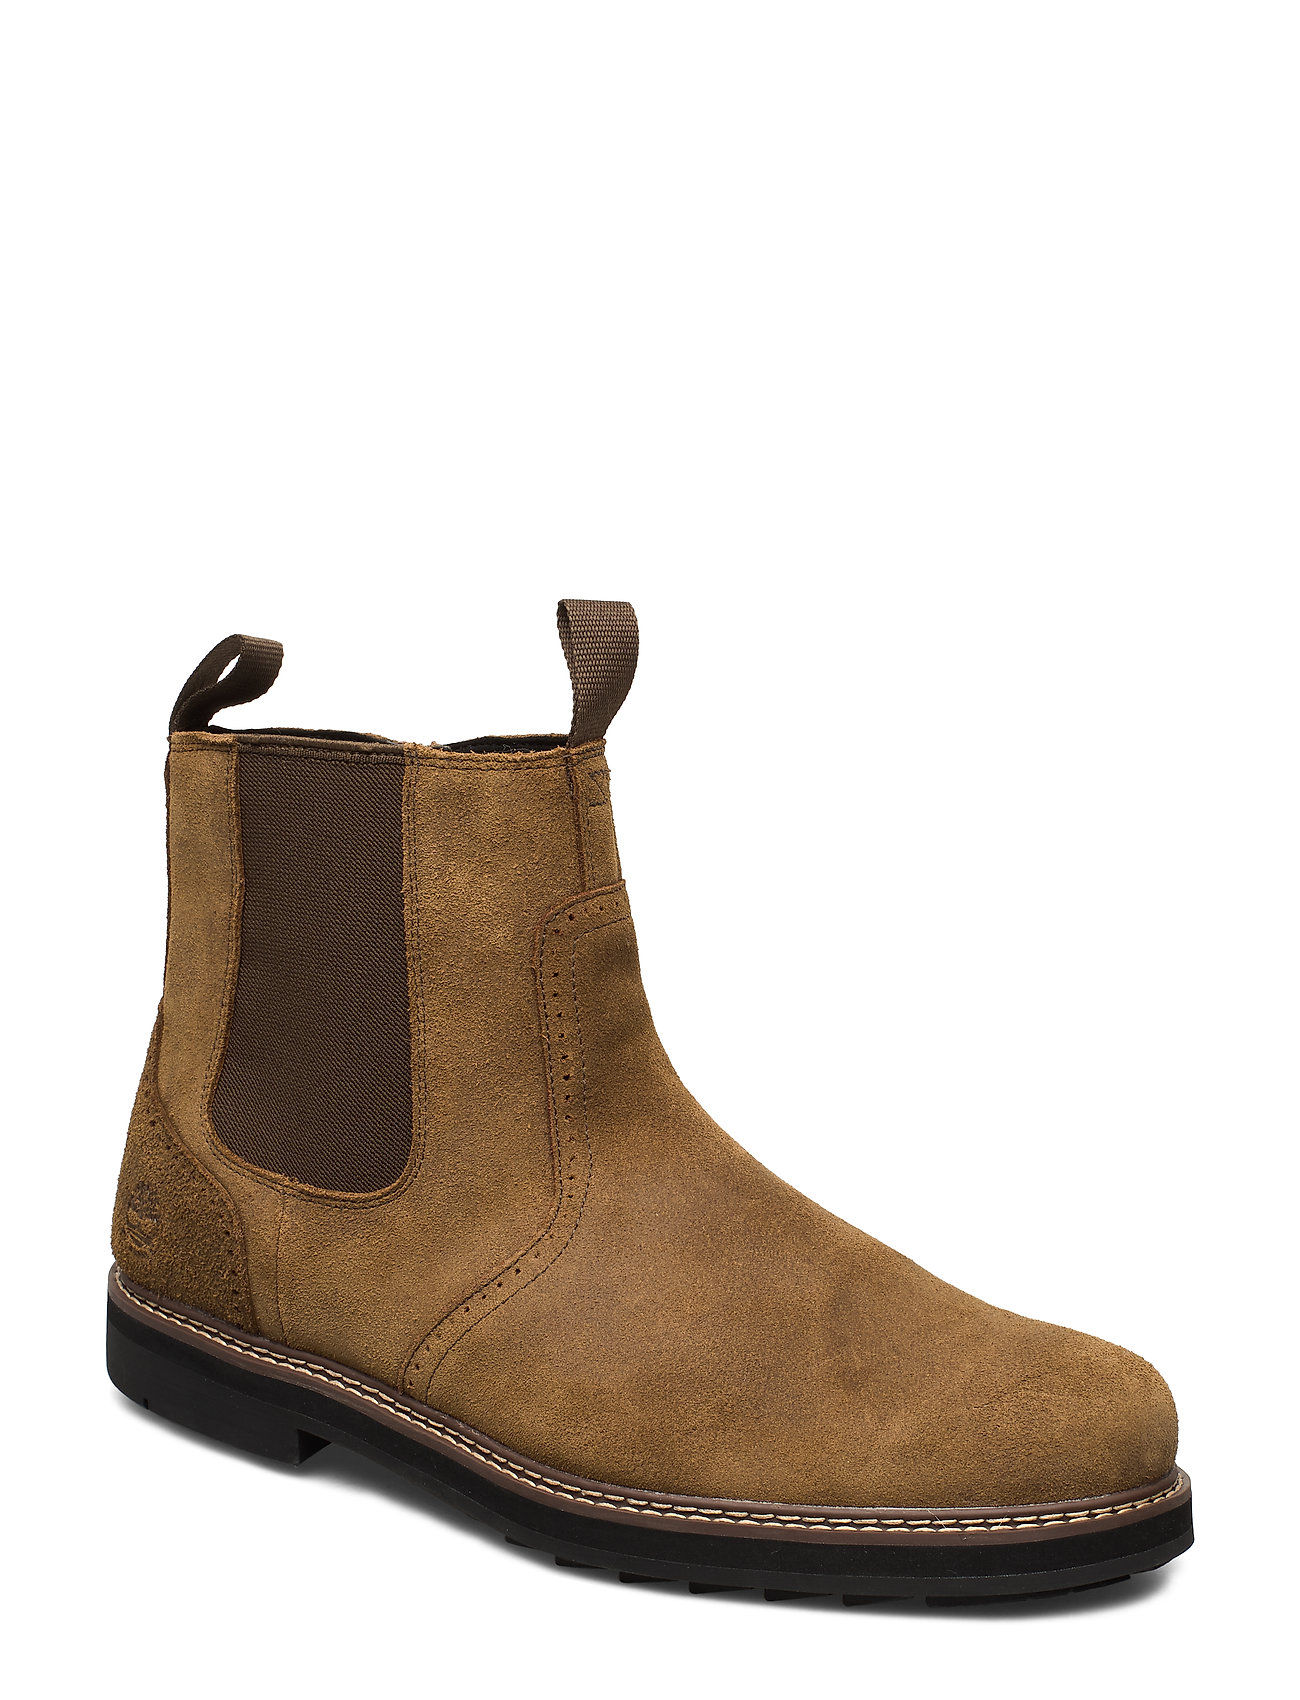 Squall Canyon Brog Wp Chl Stiefeletten Chelsea Boot Braun